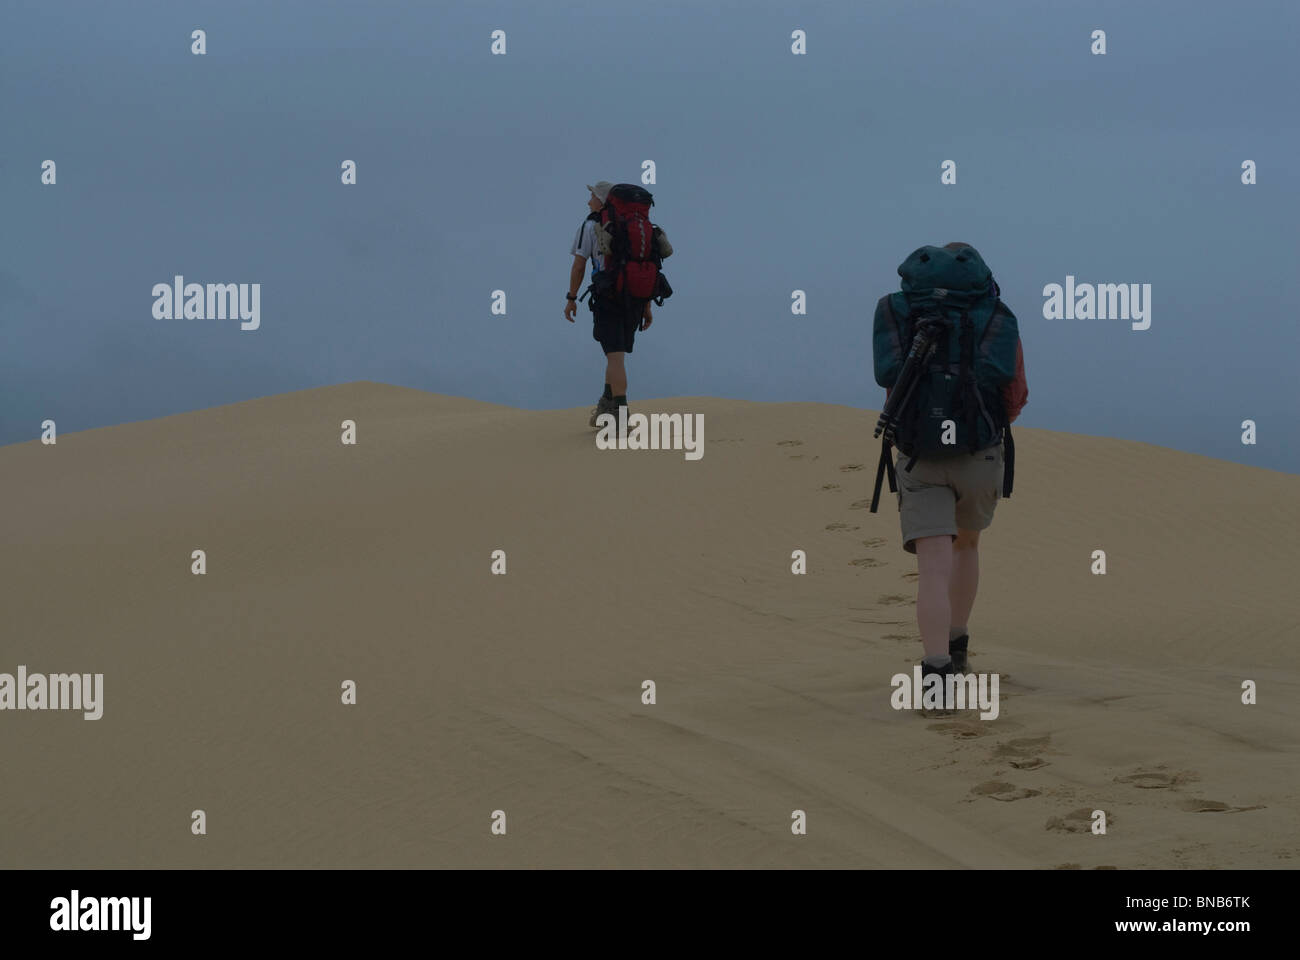 Low angle of two trekkers walking the crest of a hill with their backpacks, against the blue of the sky. Footprints - Stock Image